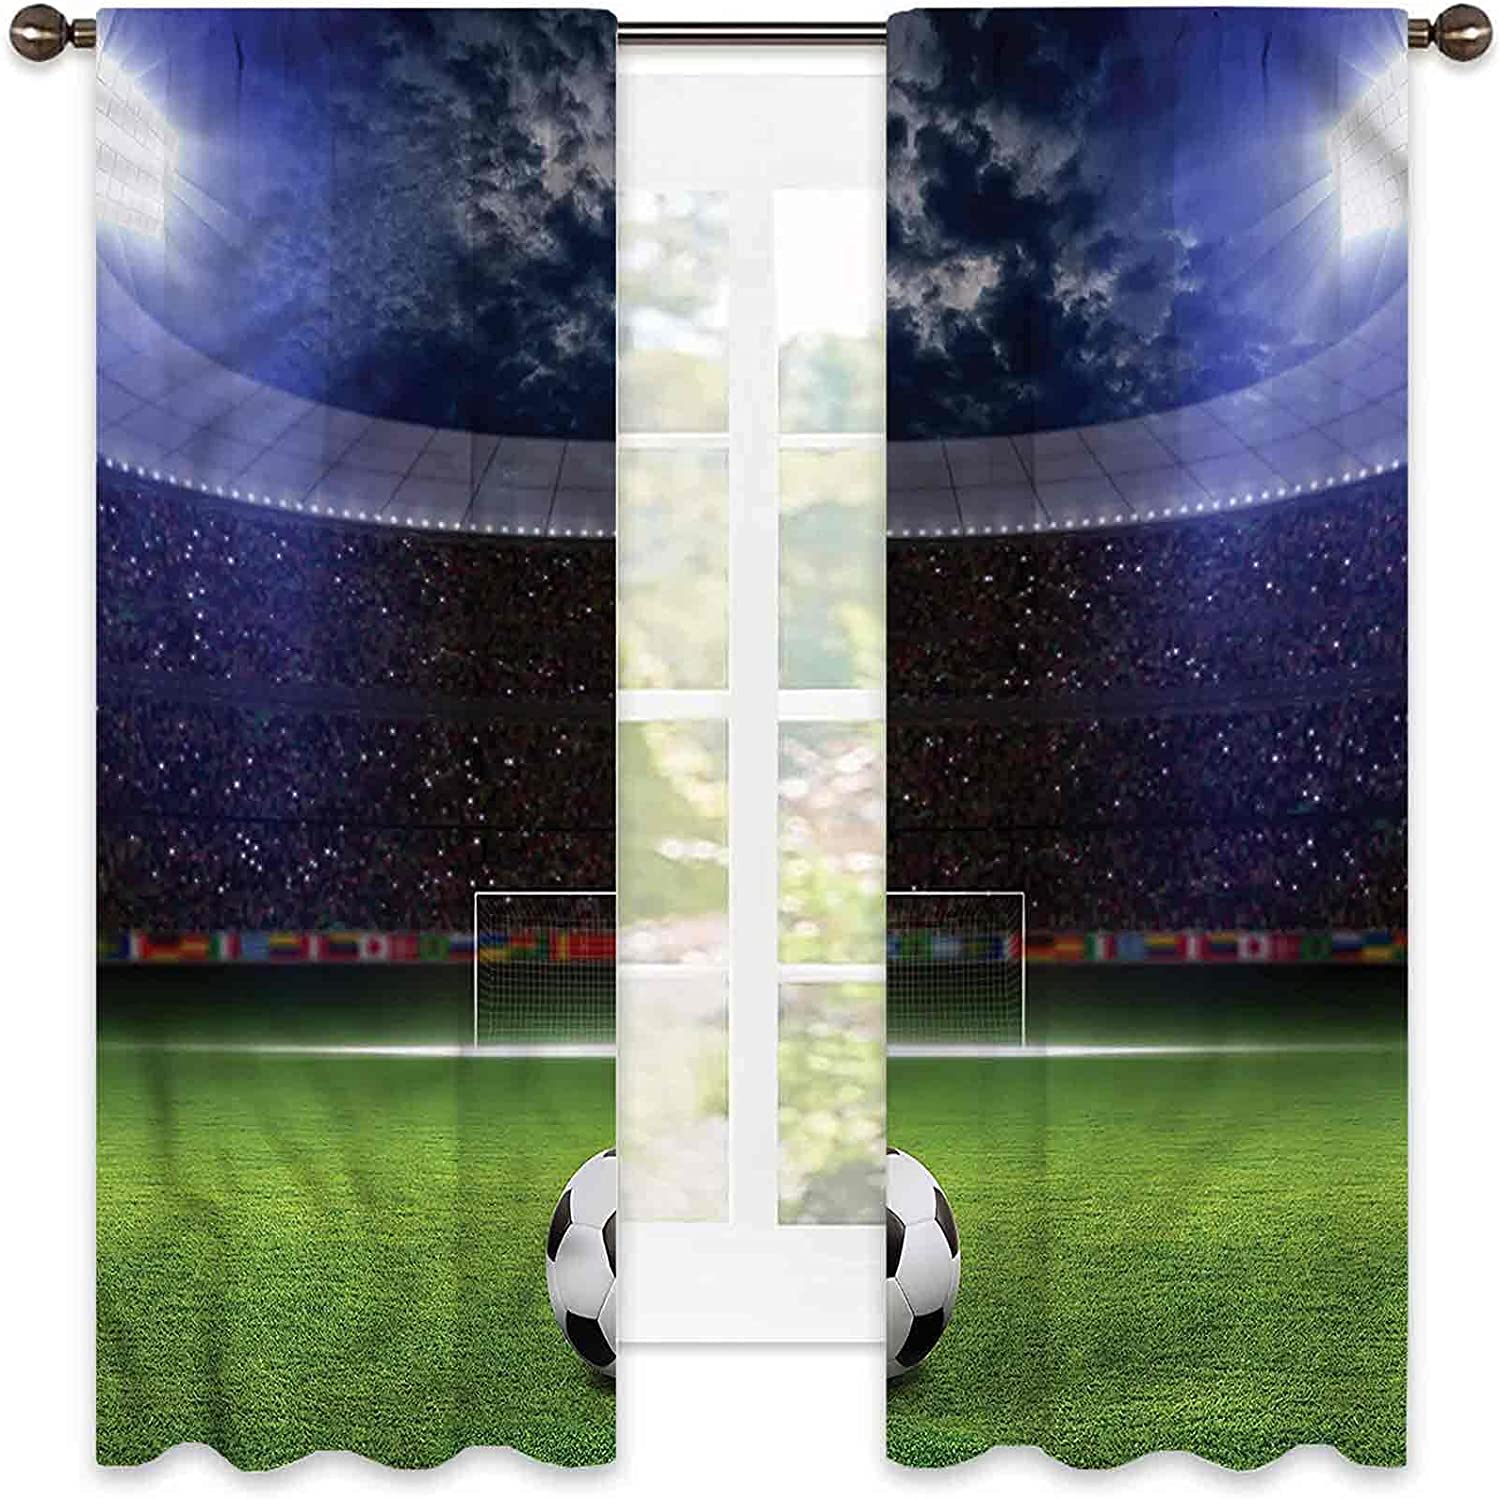 Sports 90% Blackout Curtains Stadium Arena Soundp in The New sales Night Time sale